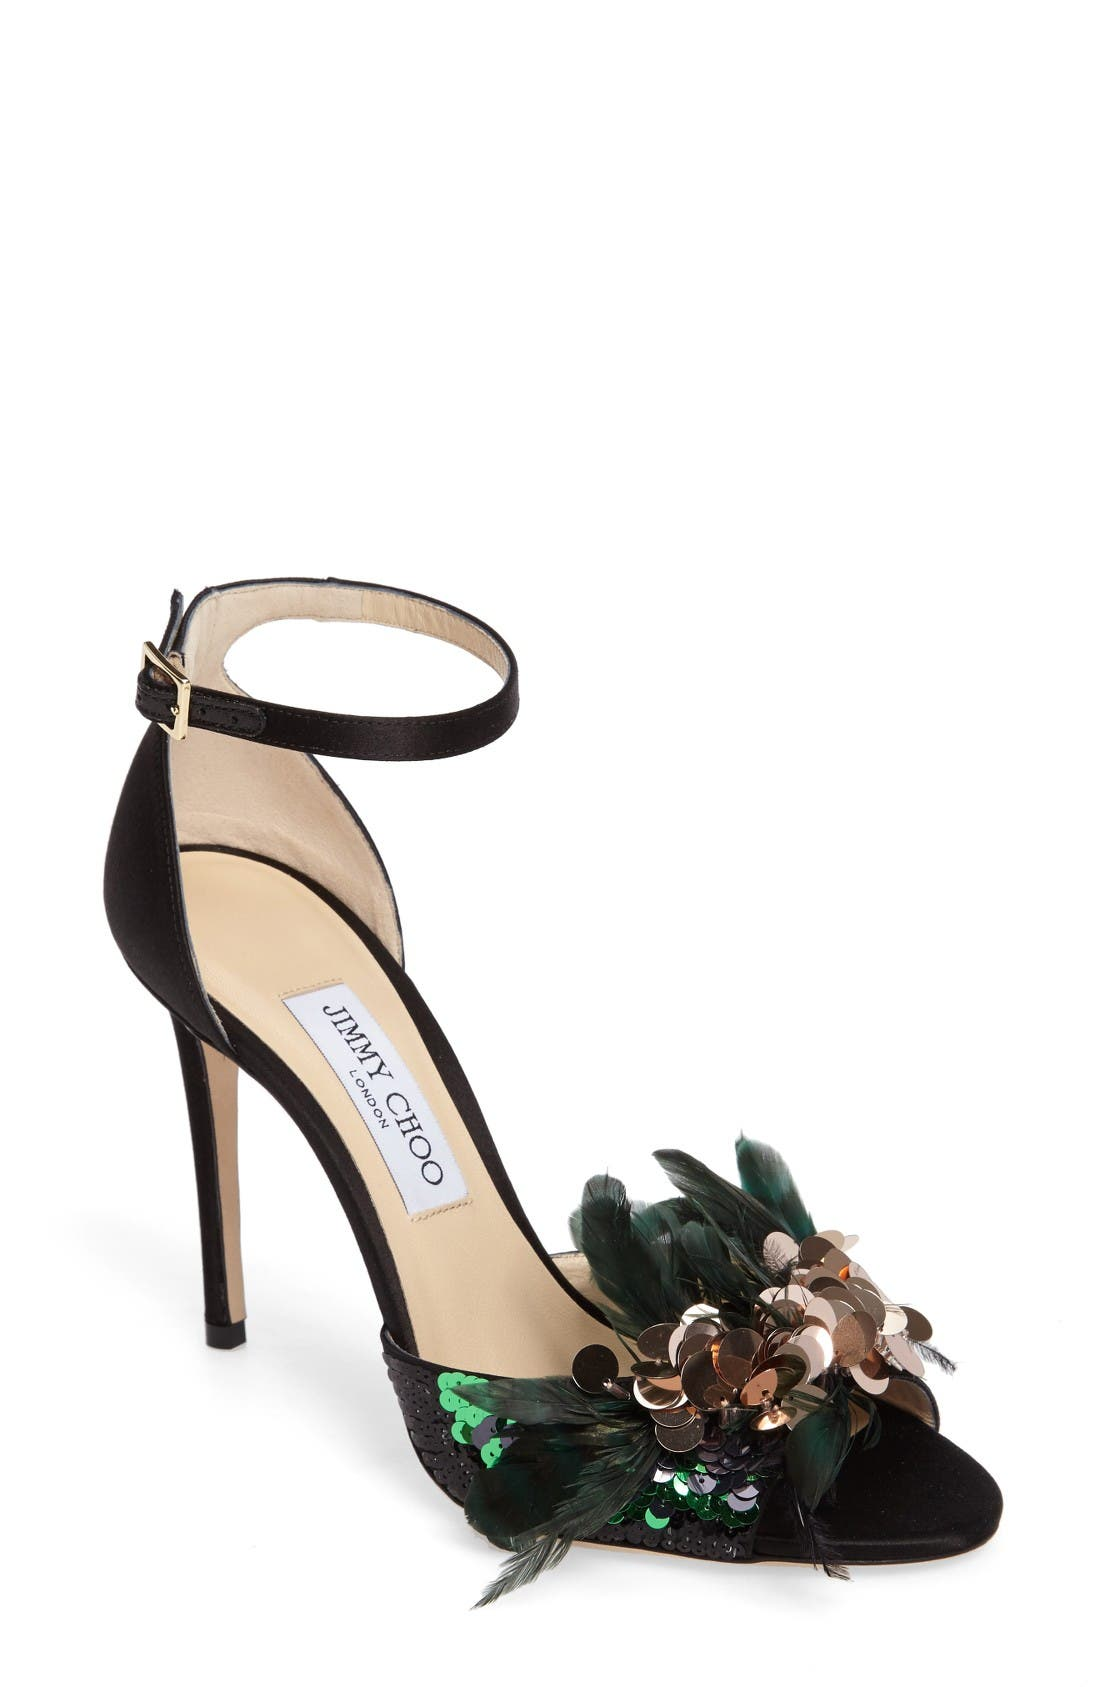 Main Image - Jimmy Choo Annie Ankle Strap Sandal (Women)